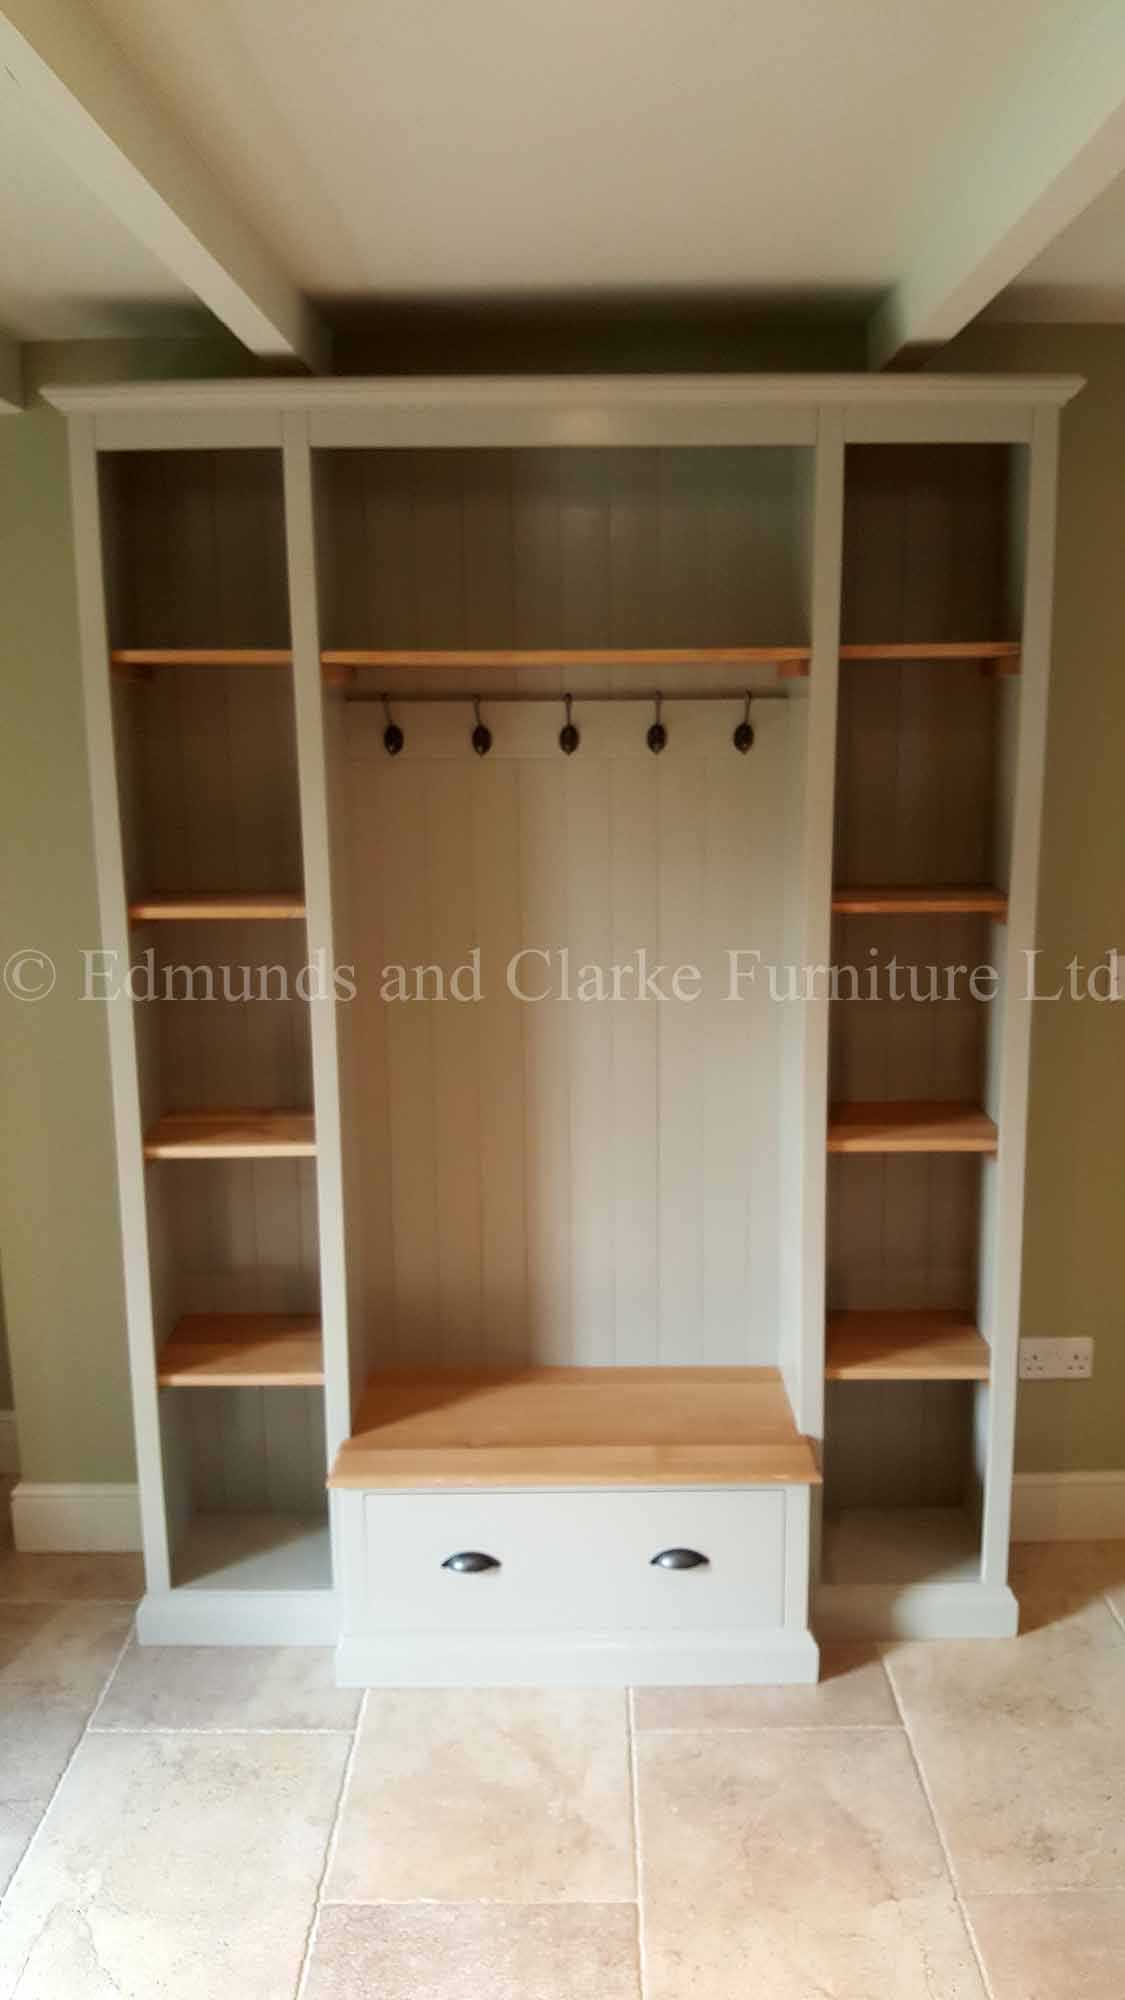 Made to measure bespoke hallway storage seat and shelving